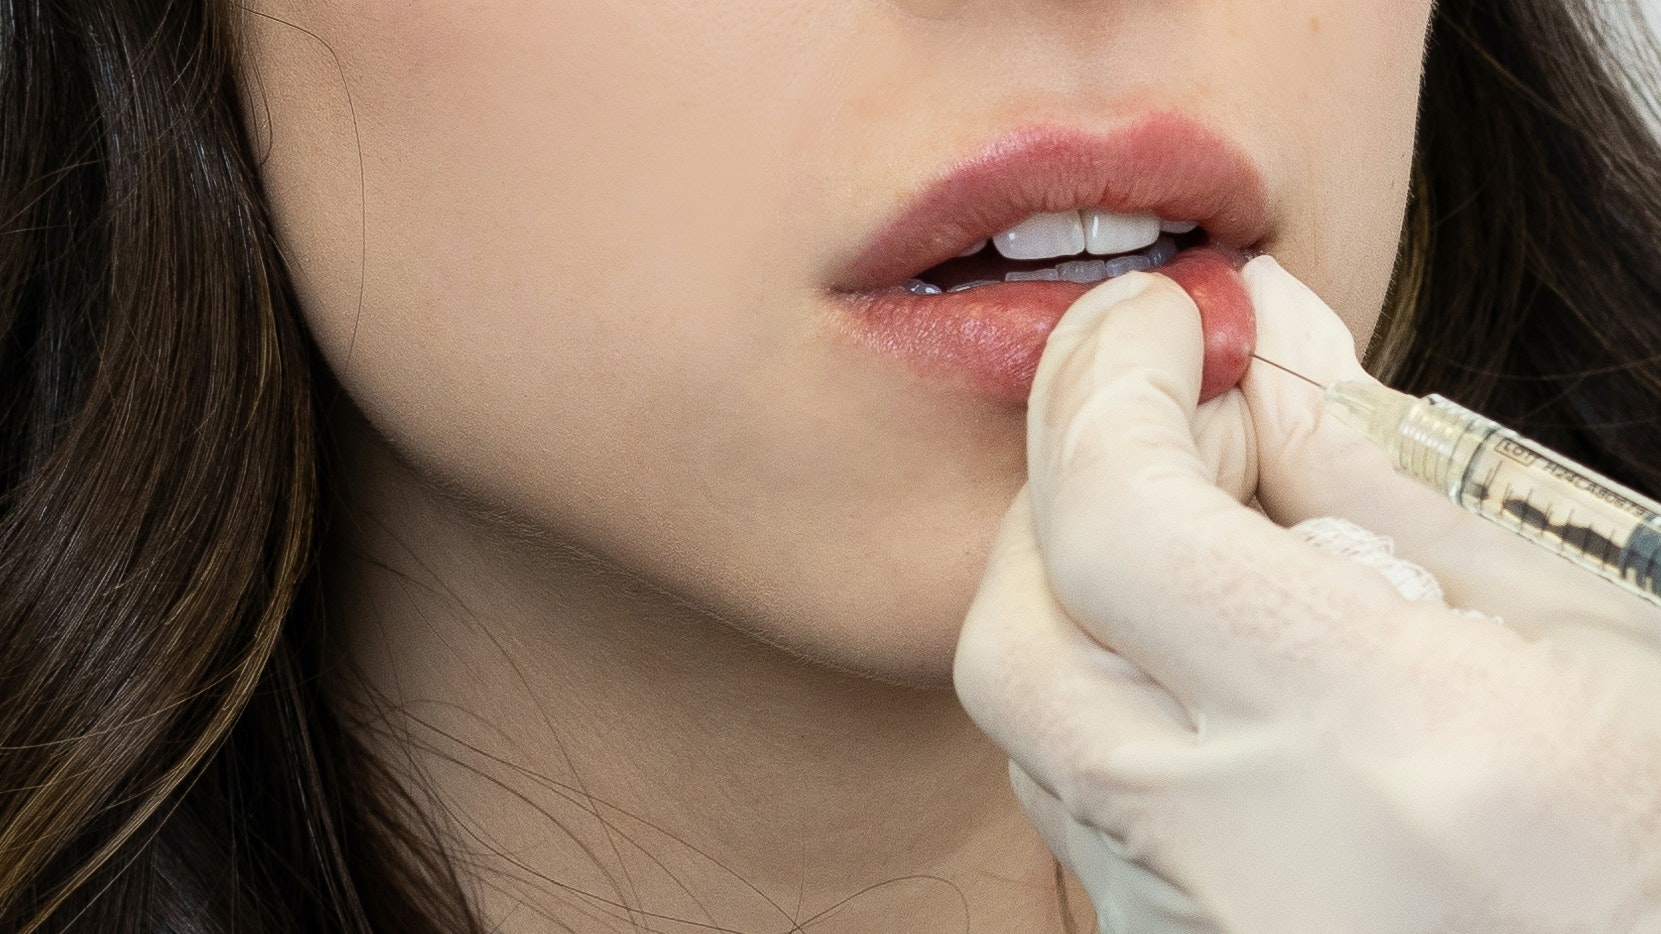 8 Aesthetics Treatments That Are Bound to Go Viral in 2020, According to Doctors